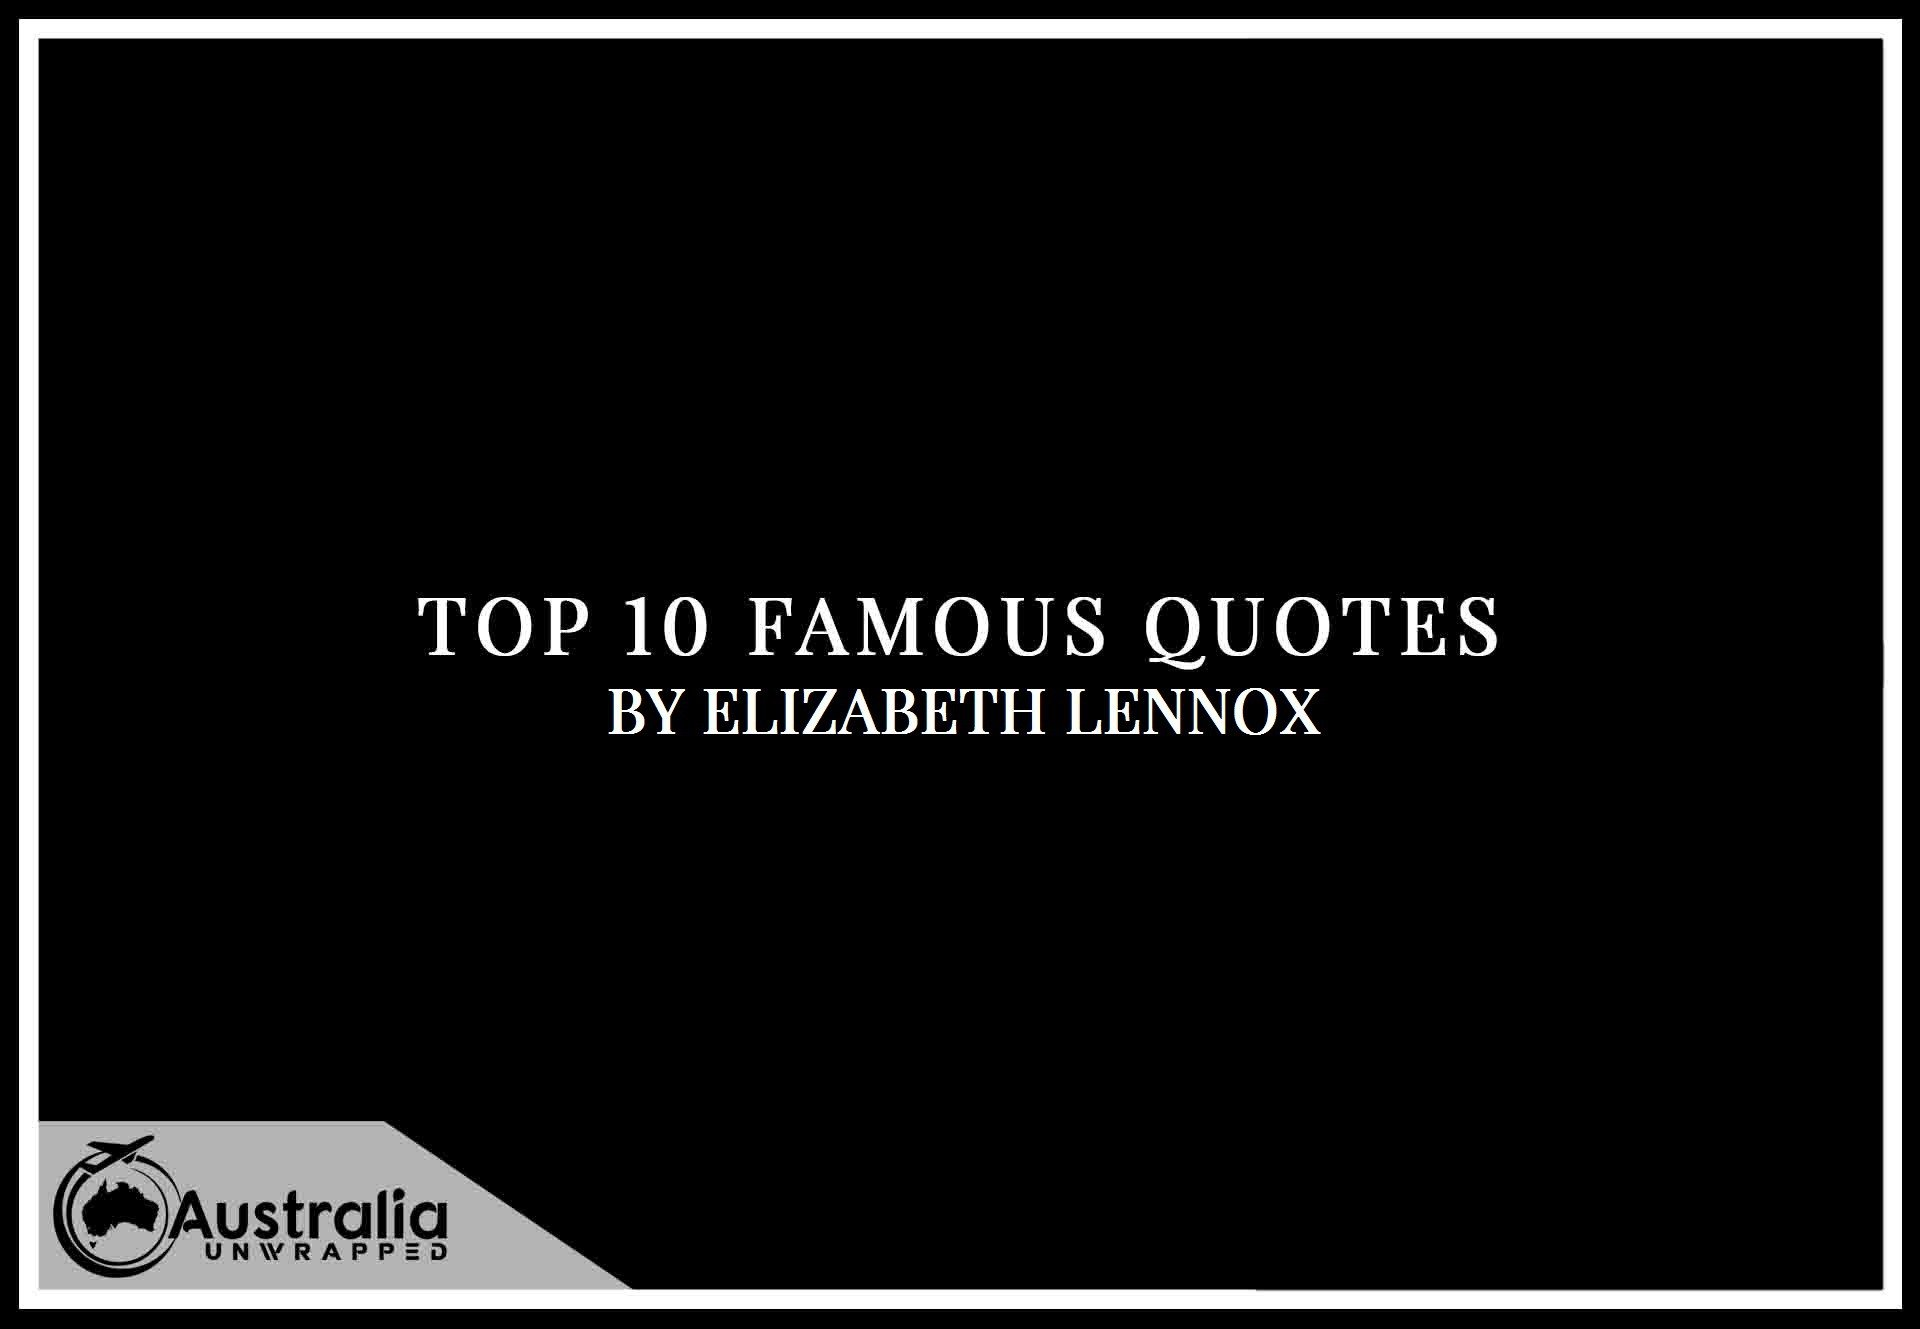 Elizabeth Lennox's Top 10 Popular and Famous Quotes